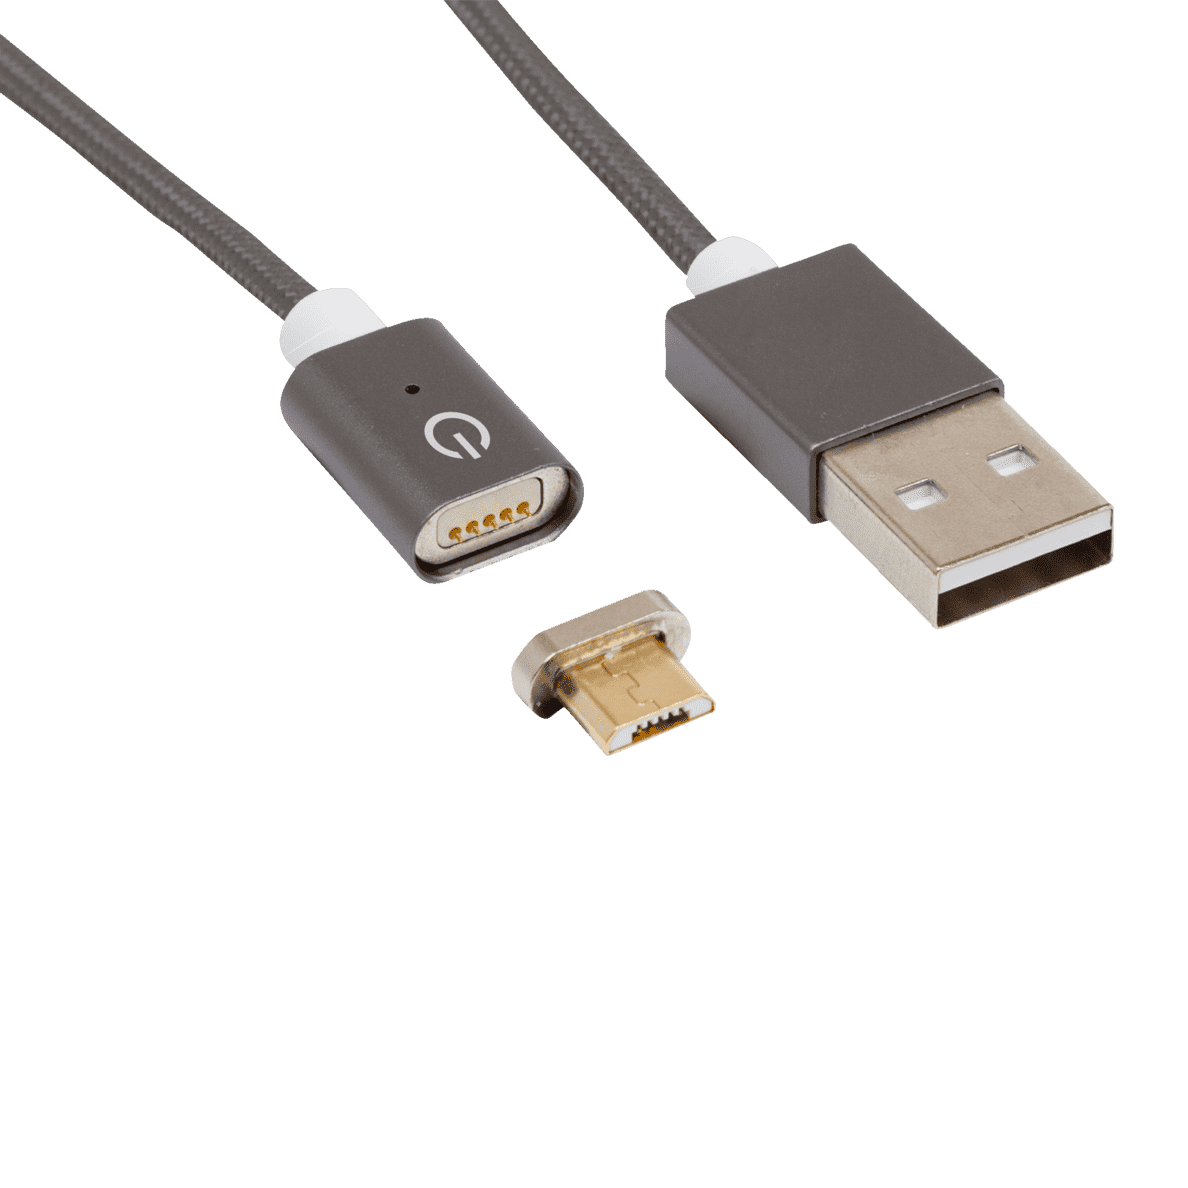 REALPOWER  Magnetic mobile M Magnetisches Micro-USB Sync- und Ladekabel, Alle Endgeräte mit Micro-USB Ladeport, Dunkelgrau | 04040895003096